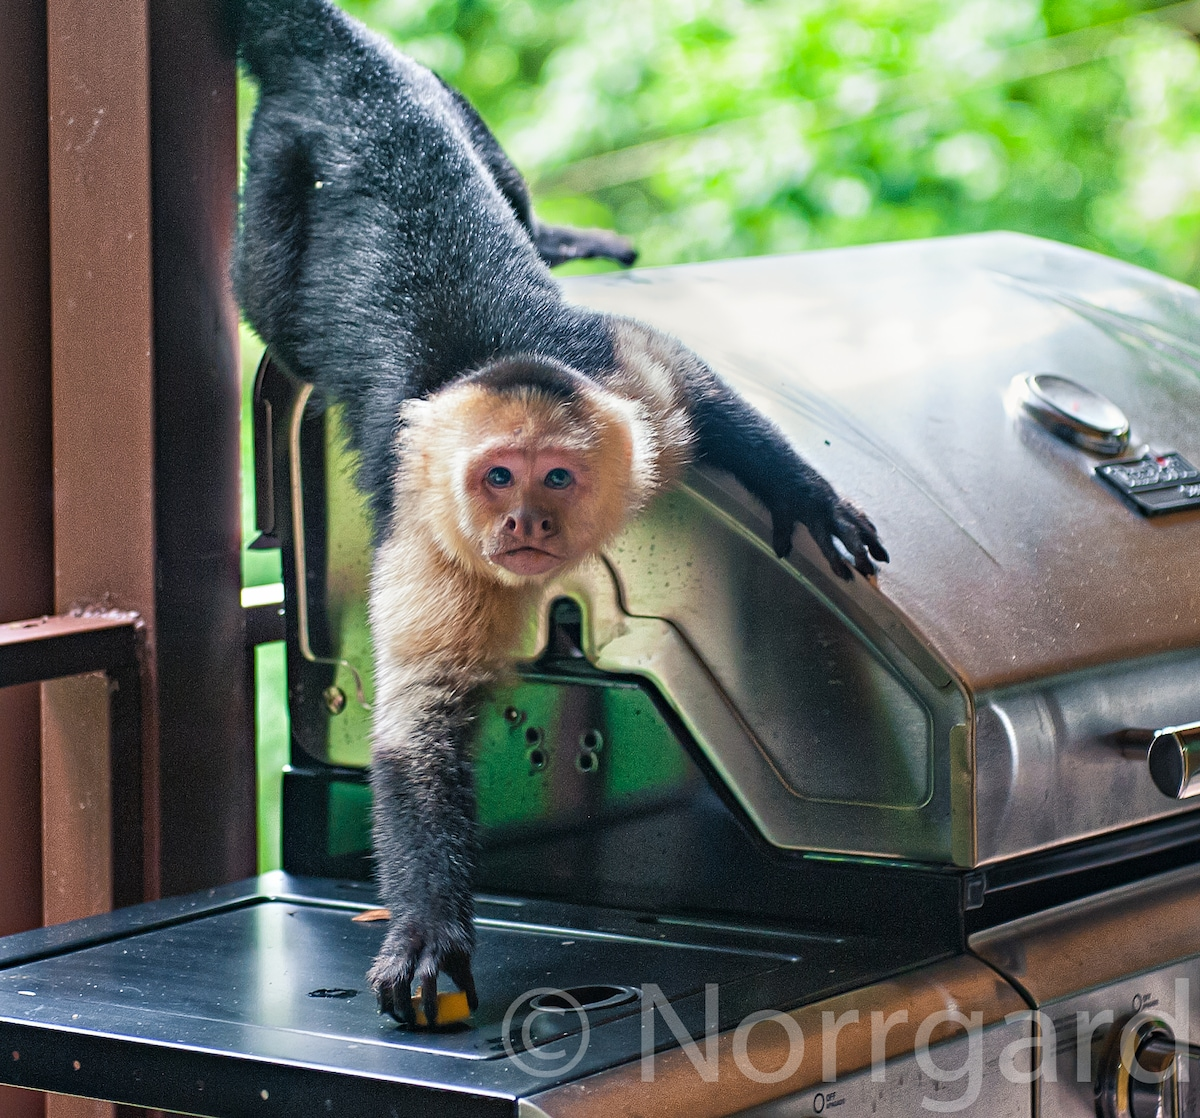 monkeys and other wild life visit on a daily base